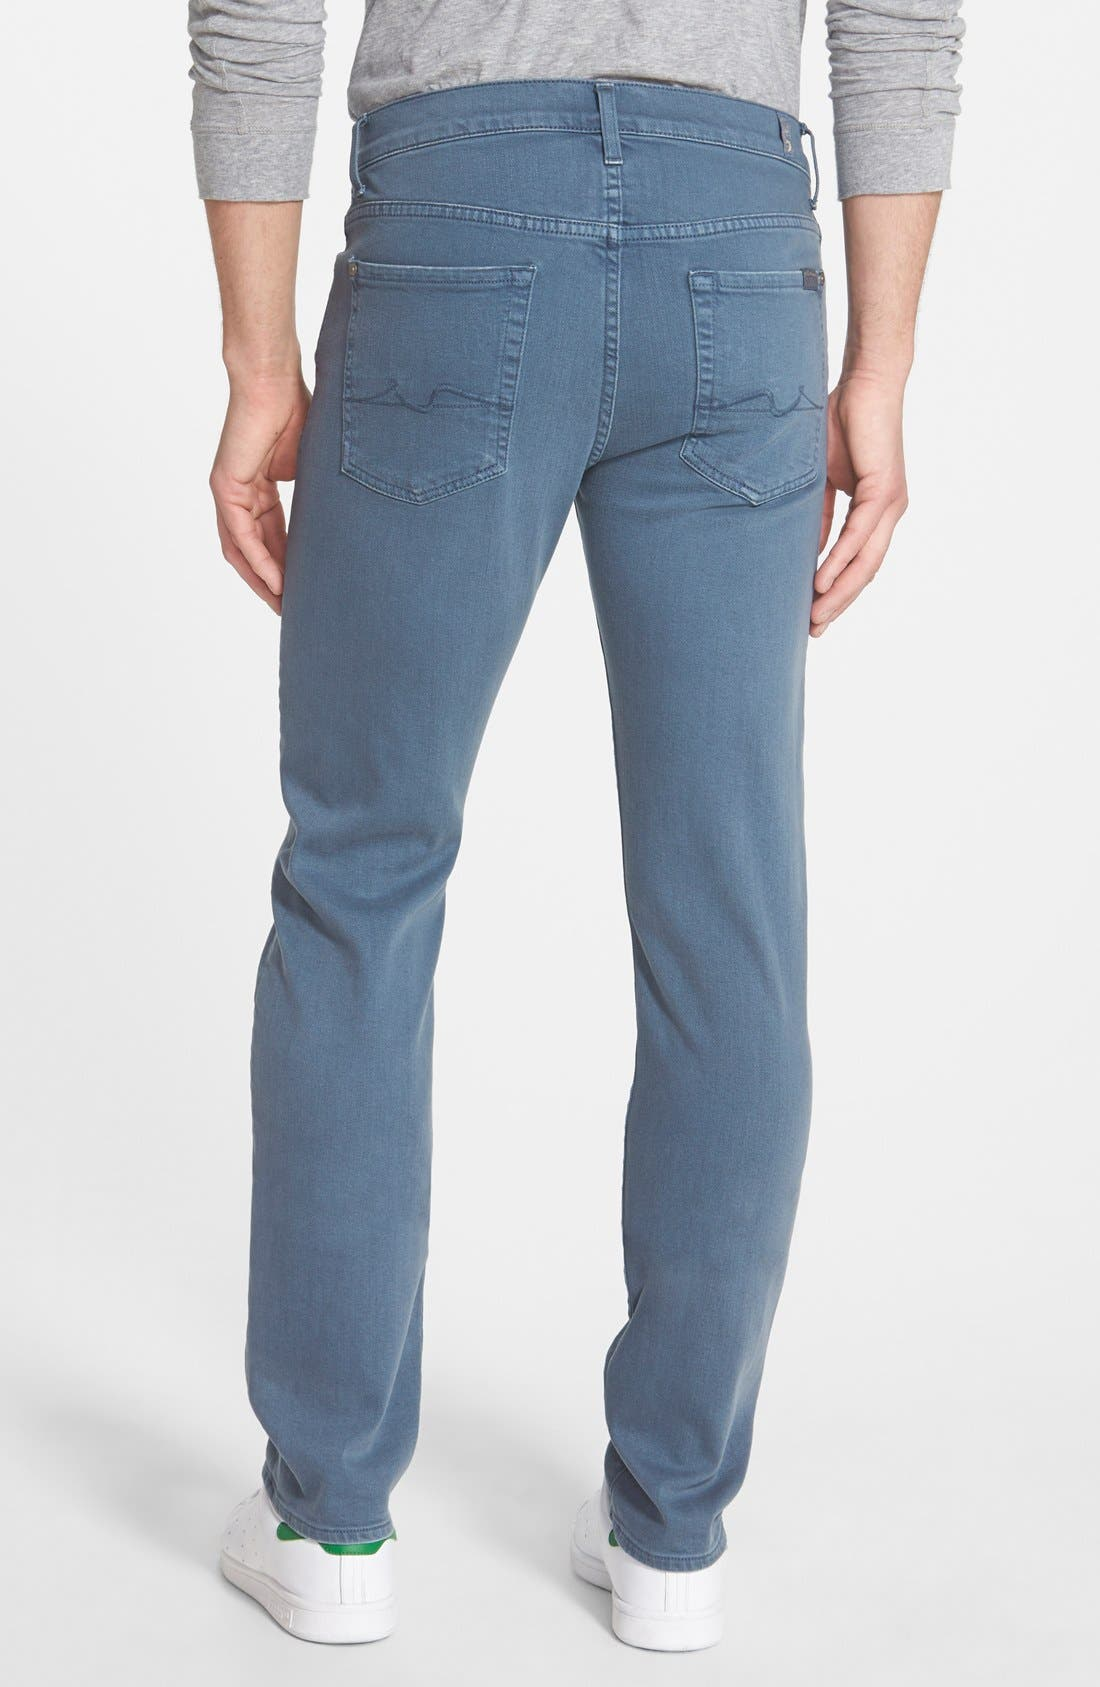 'Slimmy - Luxe Performance' Slim Fit Jeans,                             Alternate thumbnail 65, color,